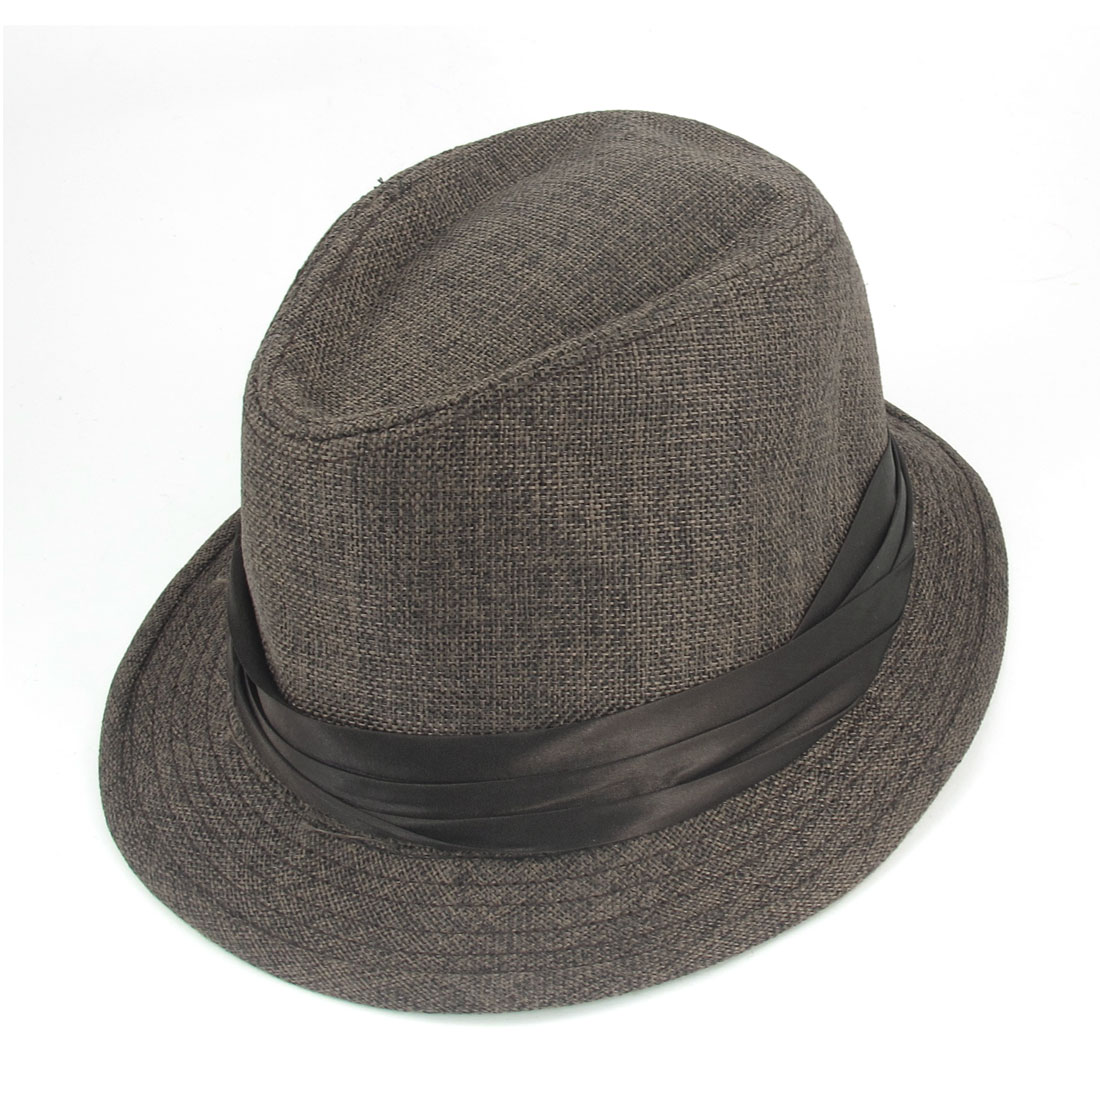 Ribbon Decor Coffee Color Castor Fedora Trilby Hat for Men Lady